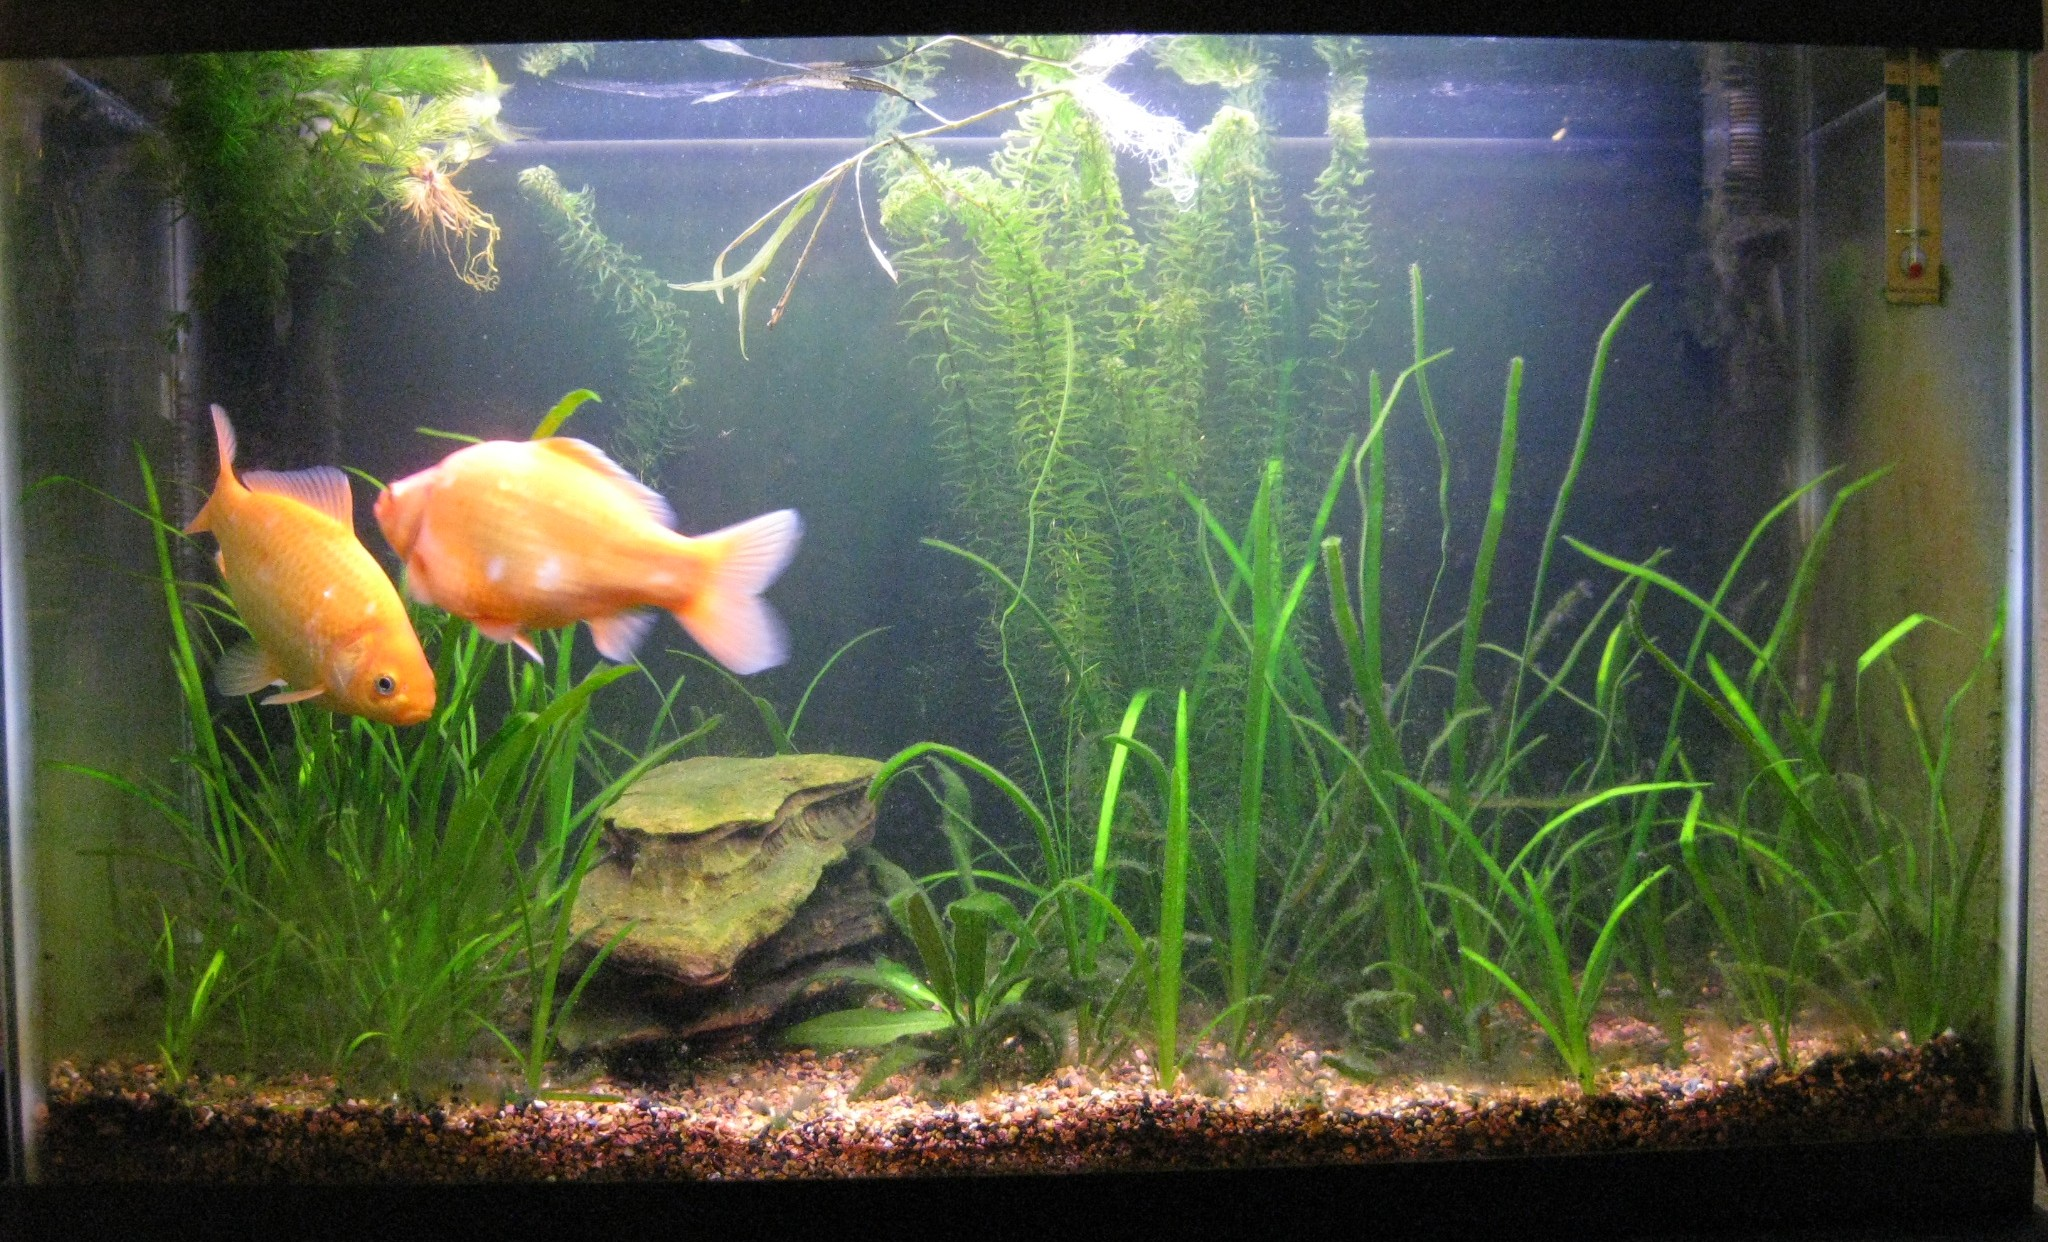 Fish in tank with goldfish - To Know In Details About Fish Tank Requirements For Goldfish Click Here For The Continuation Blog Goldfish1